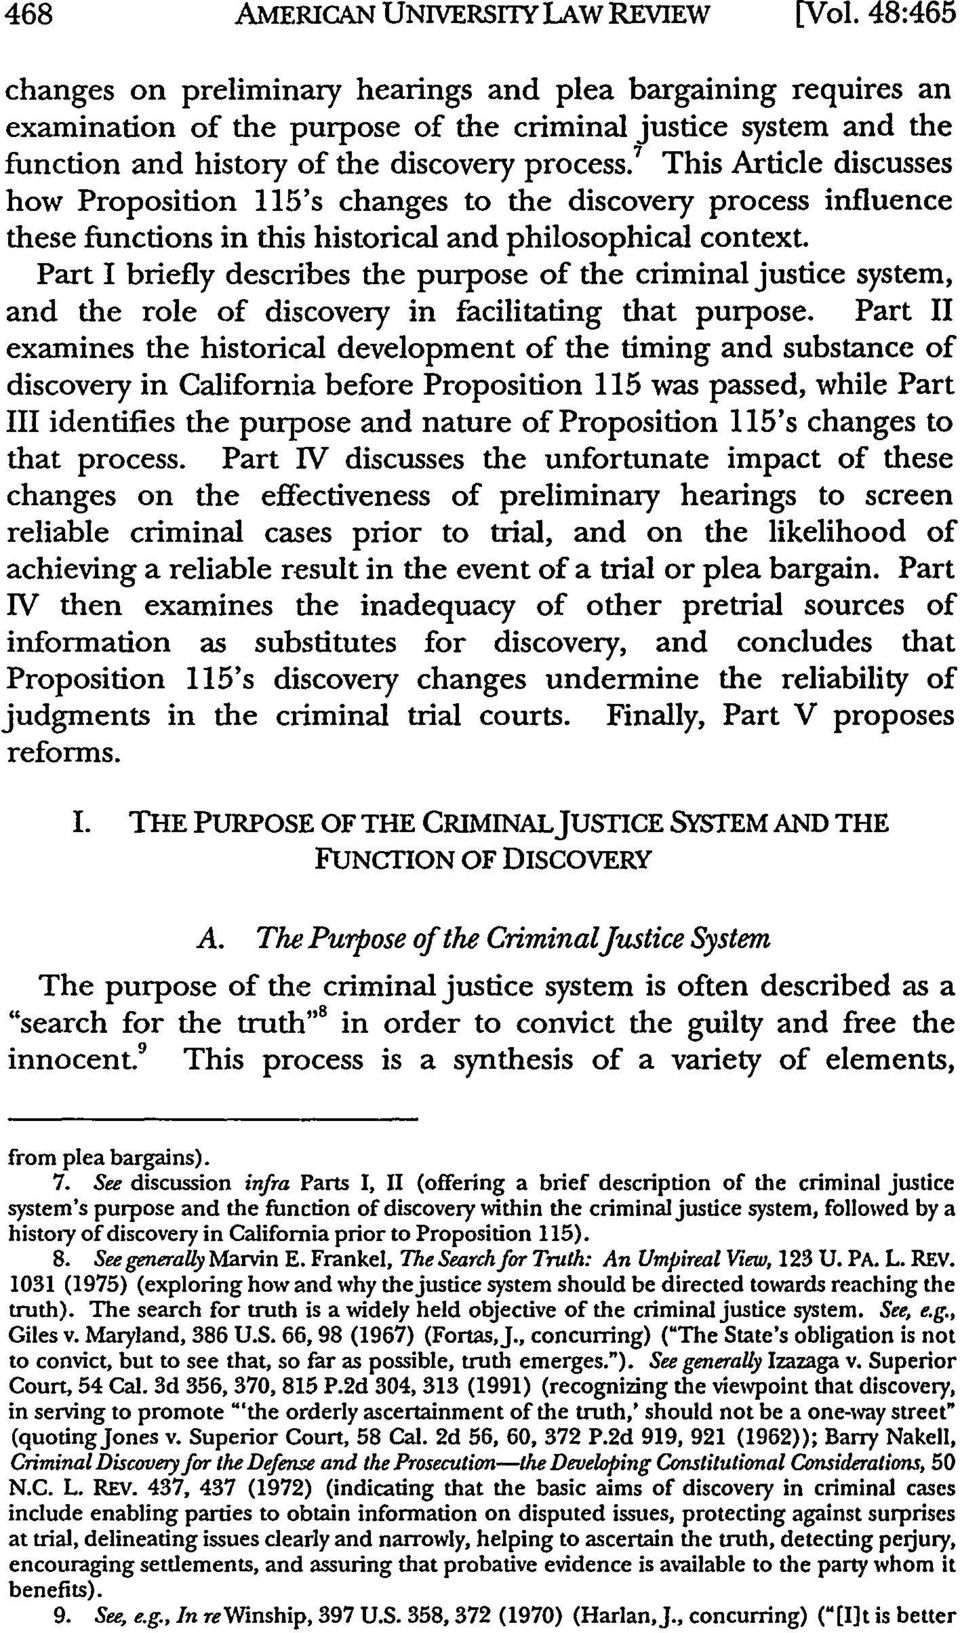 7 This Article discusses how Proposition 115's changes to the discovery process influence these functions in this historical and philosophical context.